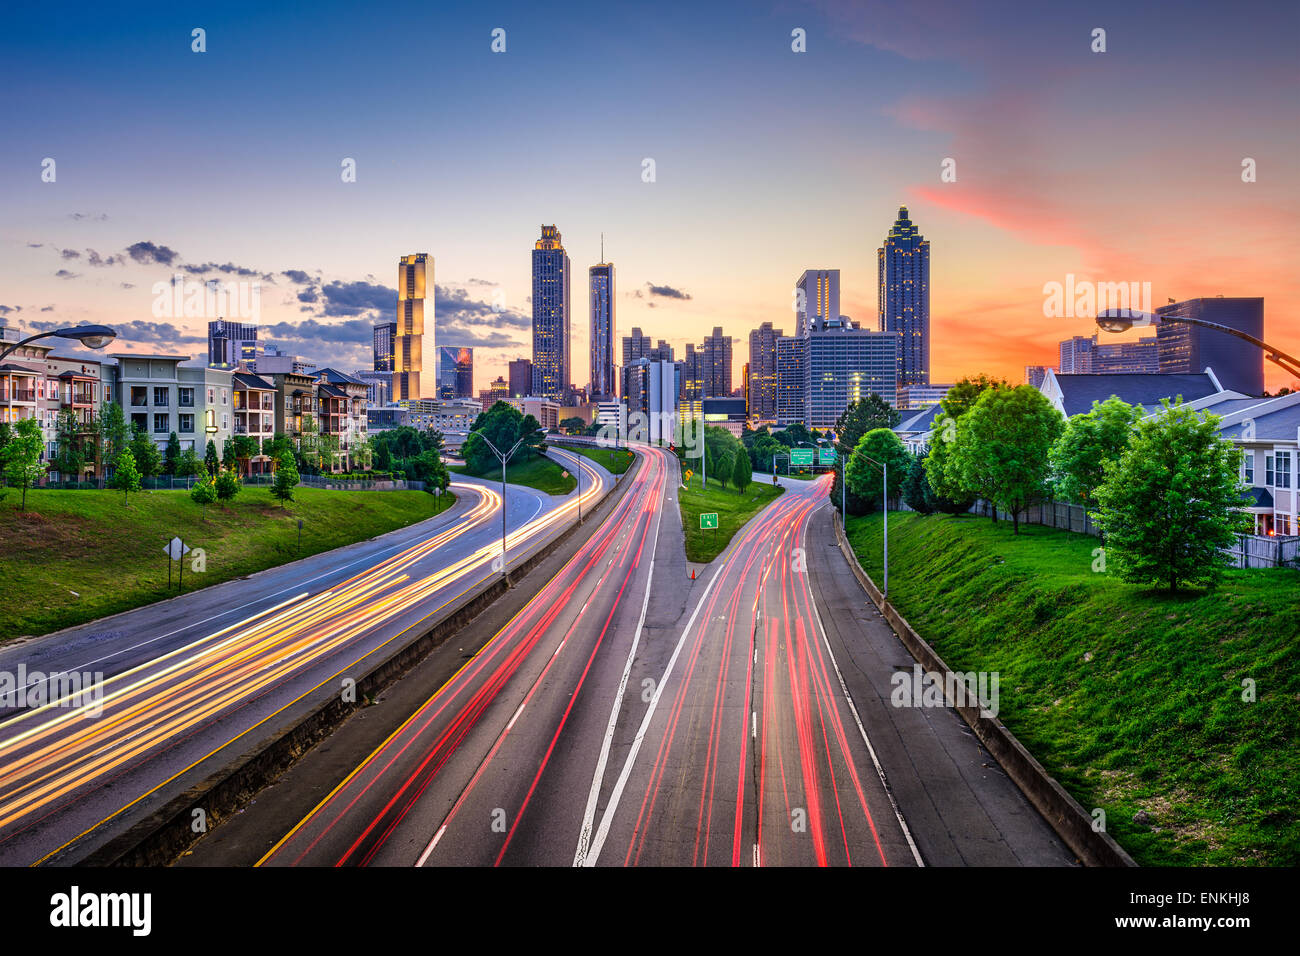 Atlanta, Georgia, USA downtown city skyline over Freedom Parkway. - Stock Image